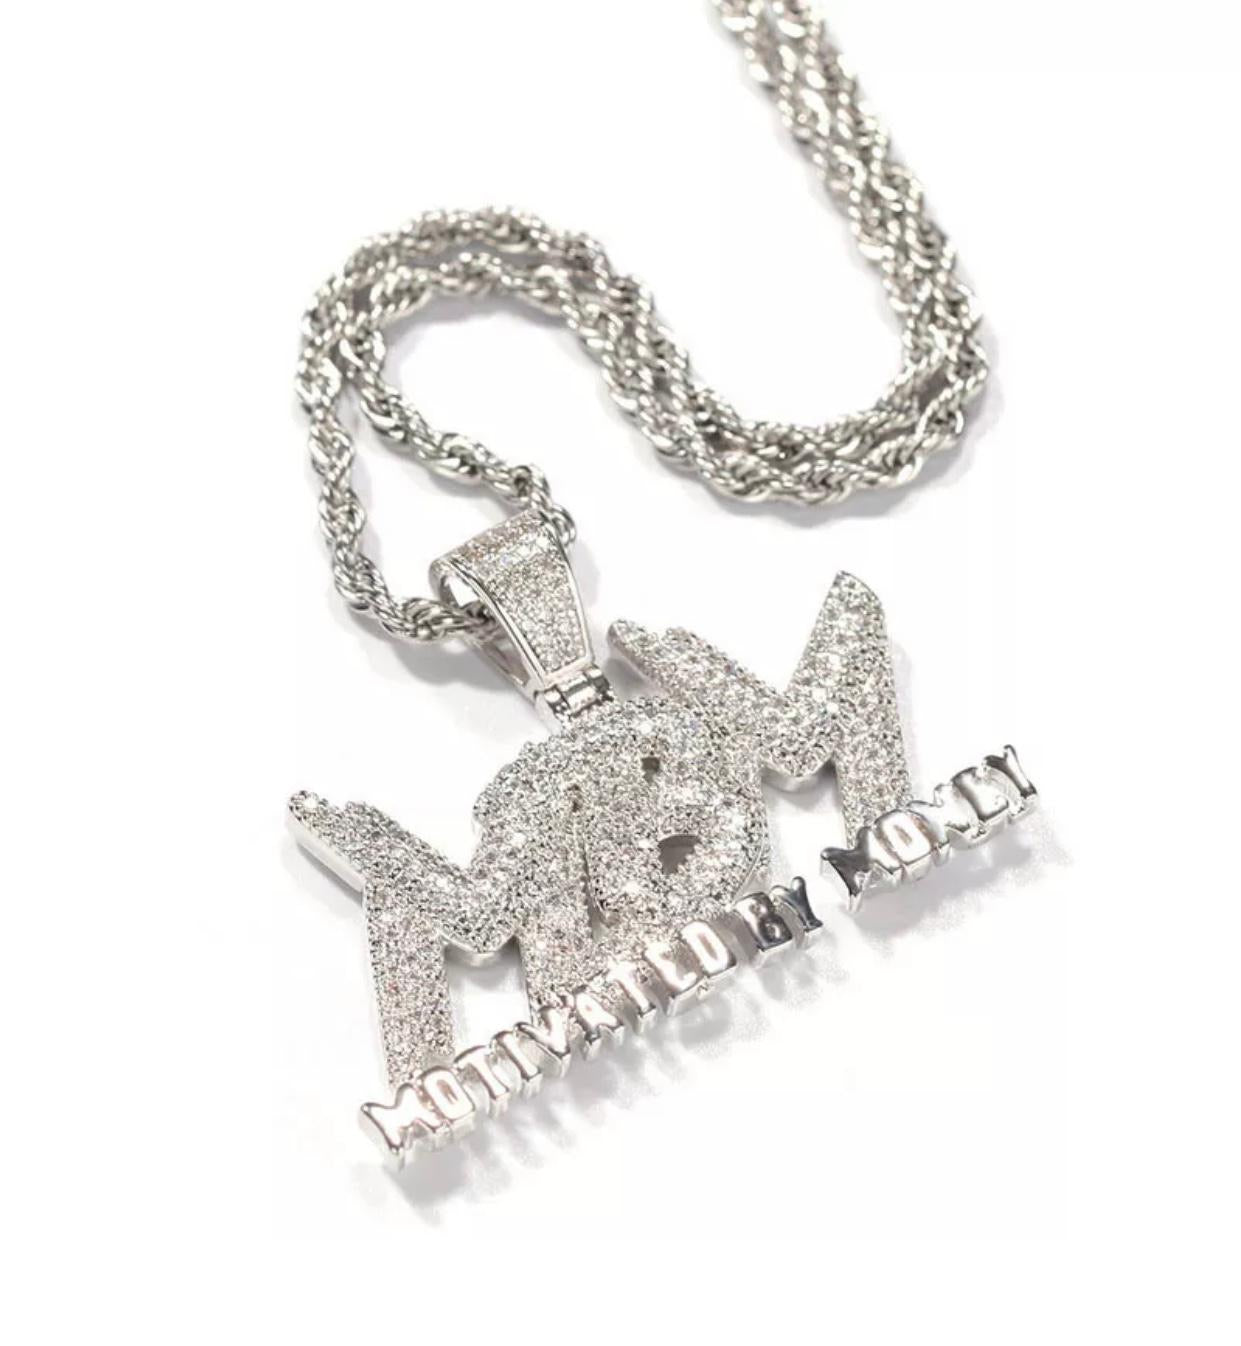 MBM Pendant and Necklace